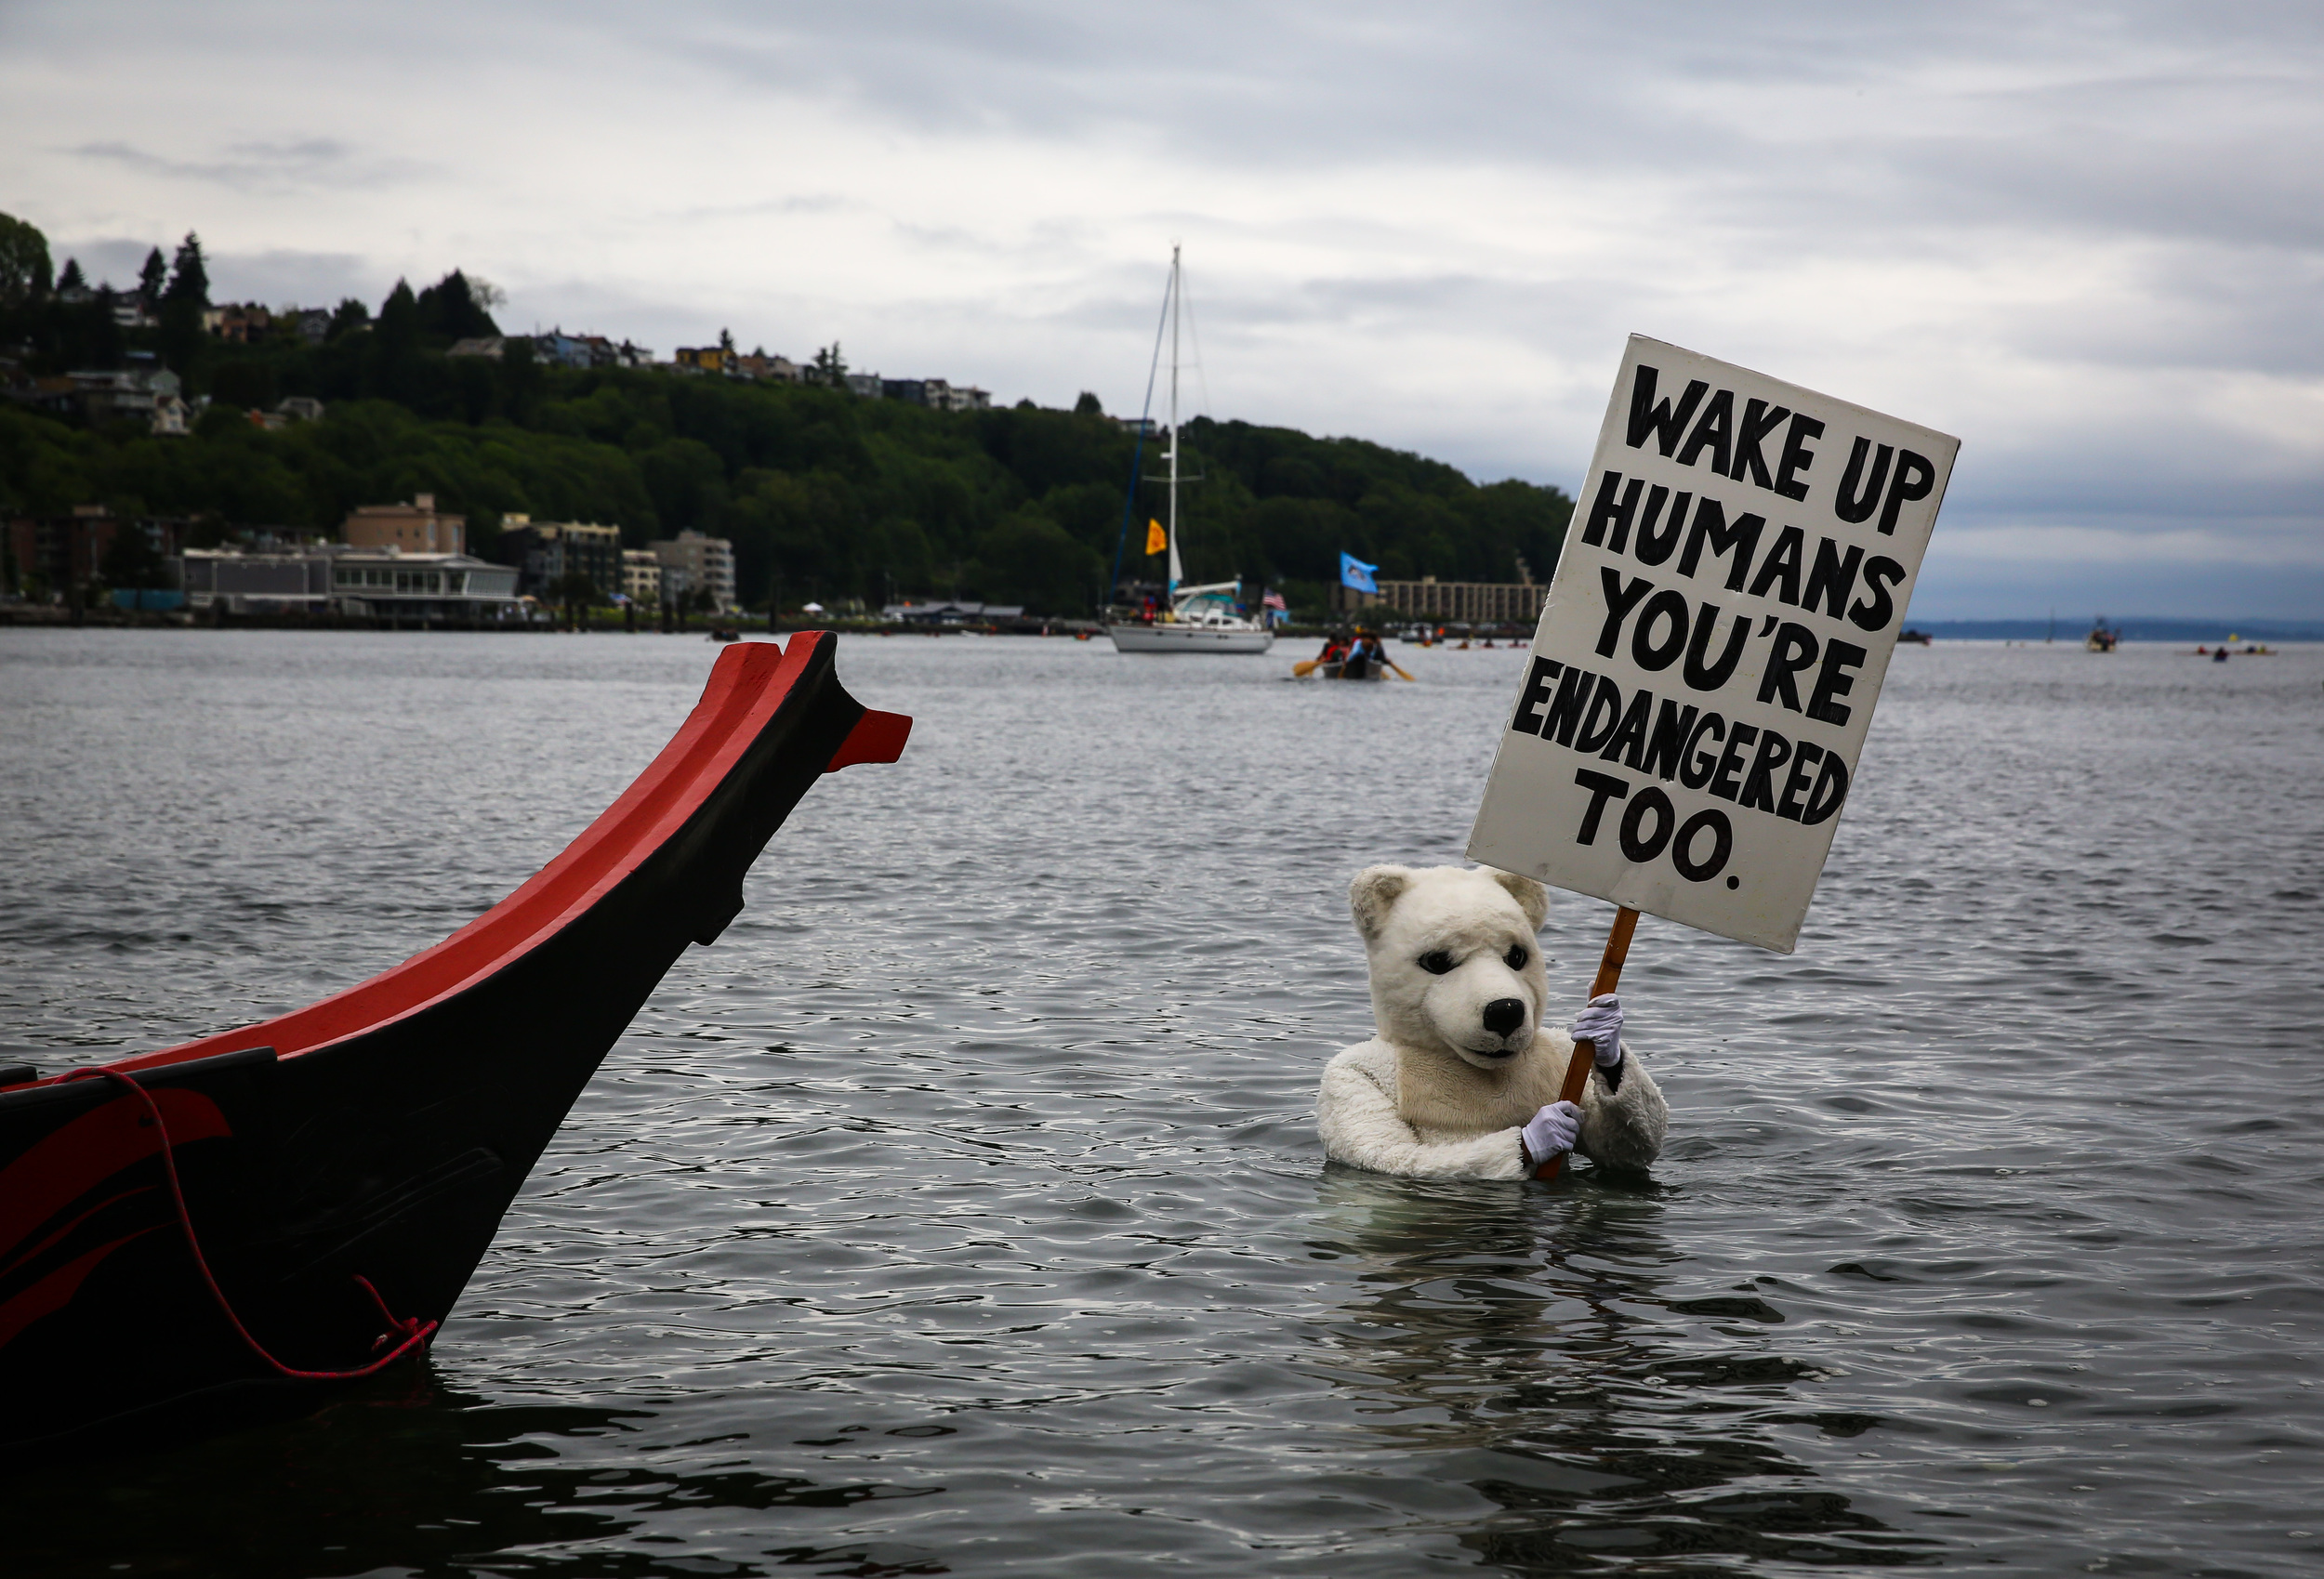 A person in a polar bear costume wades through the water during a protest against drilling in the Arctic and the Port of Seattle being used as a port for the Shell Oil drilling rig Polar Pioneer. The protest flotilla drew many paddlers to show their displeasure with the rig being moored in Seattle. Photographed on Saturday, May 16, 2015.